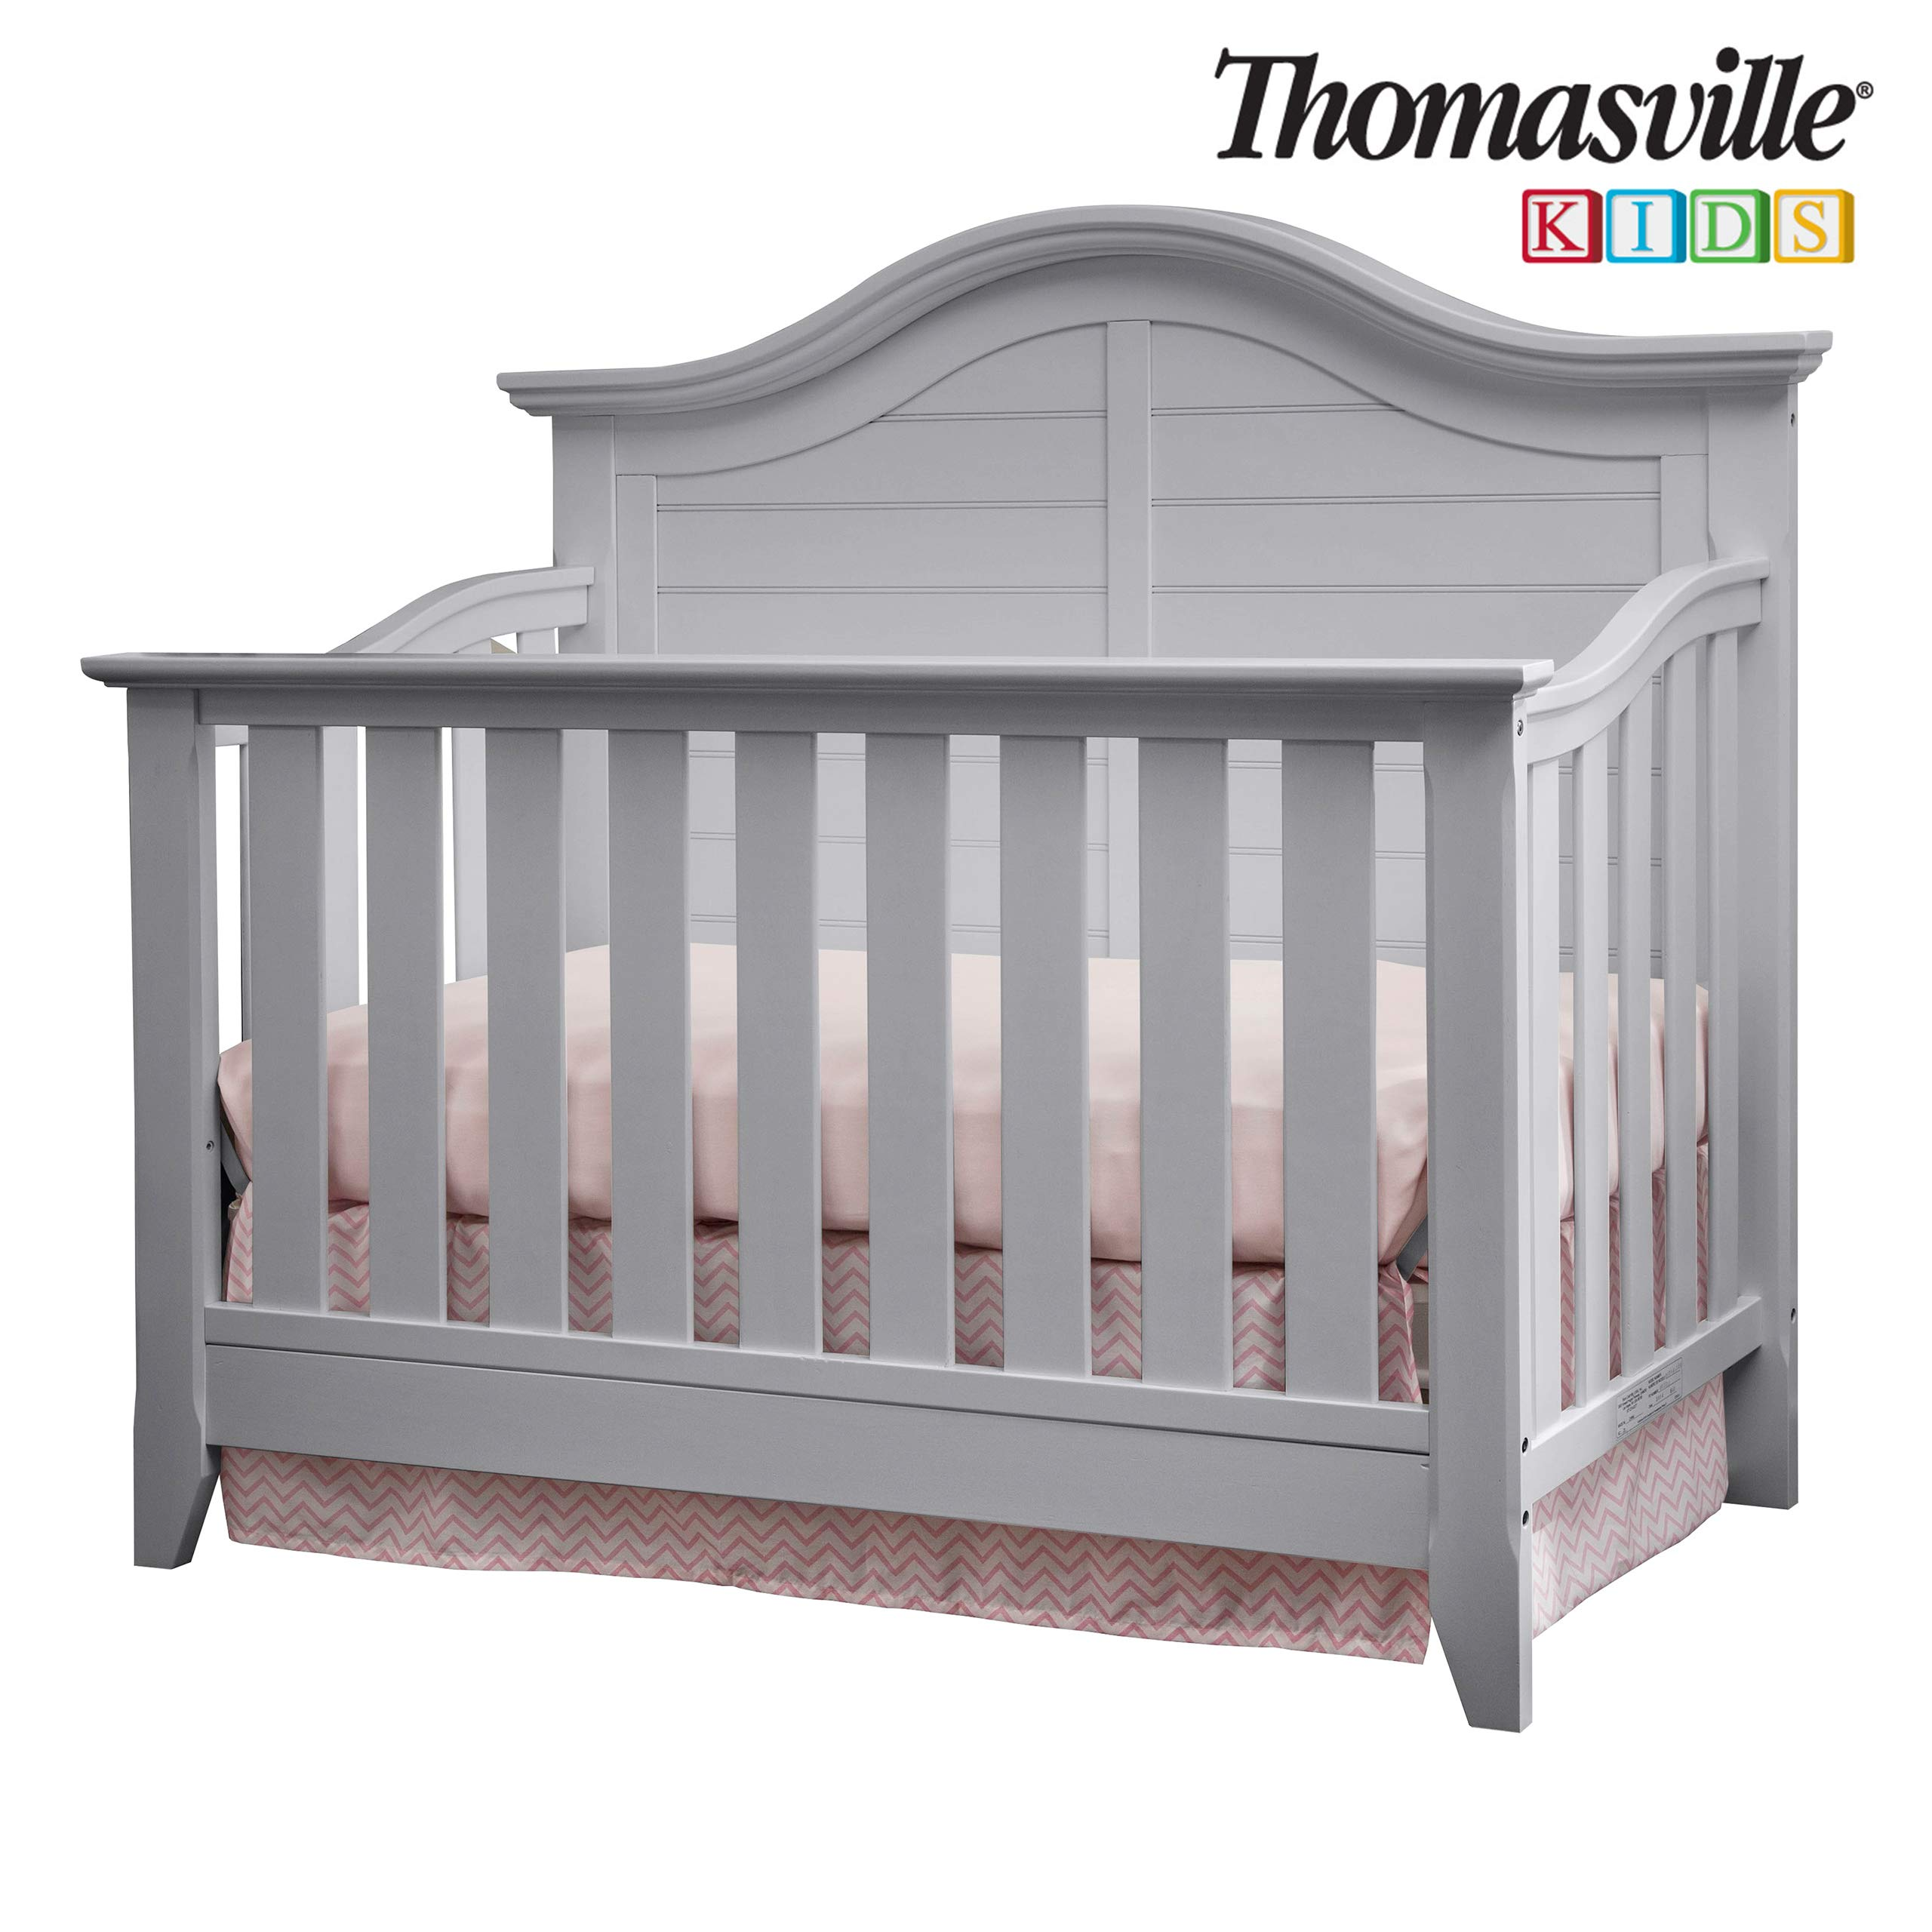 Thomasville Kids Southern Dunes Lifestyle 4-in-1 Convertible Crib, Pebble Gray, Easily Converts to Toddler Bed Day Bed or Full Bed, Three Position Adjustable Height Mattress (Mattress Not Included) by Storkcraft